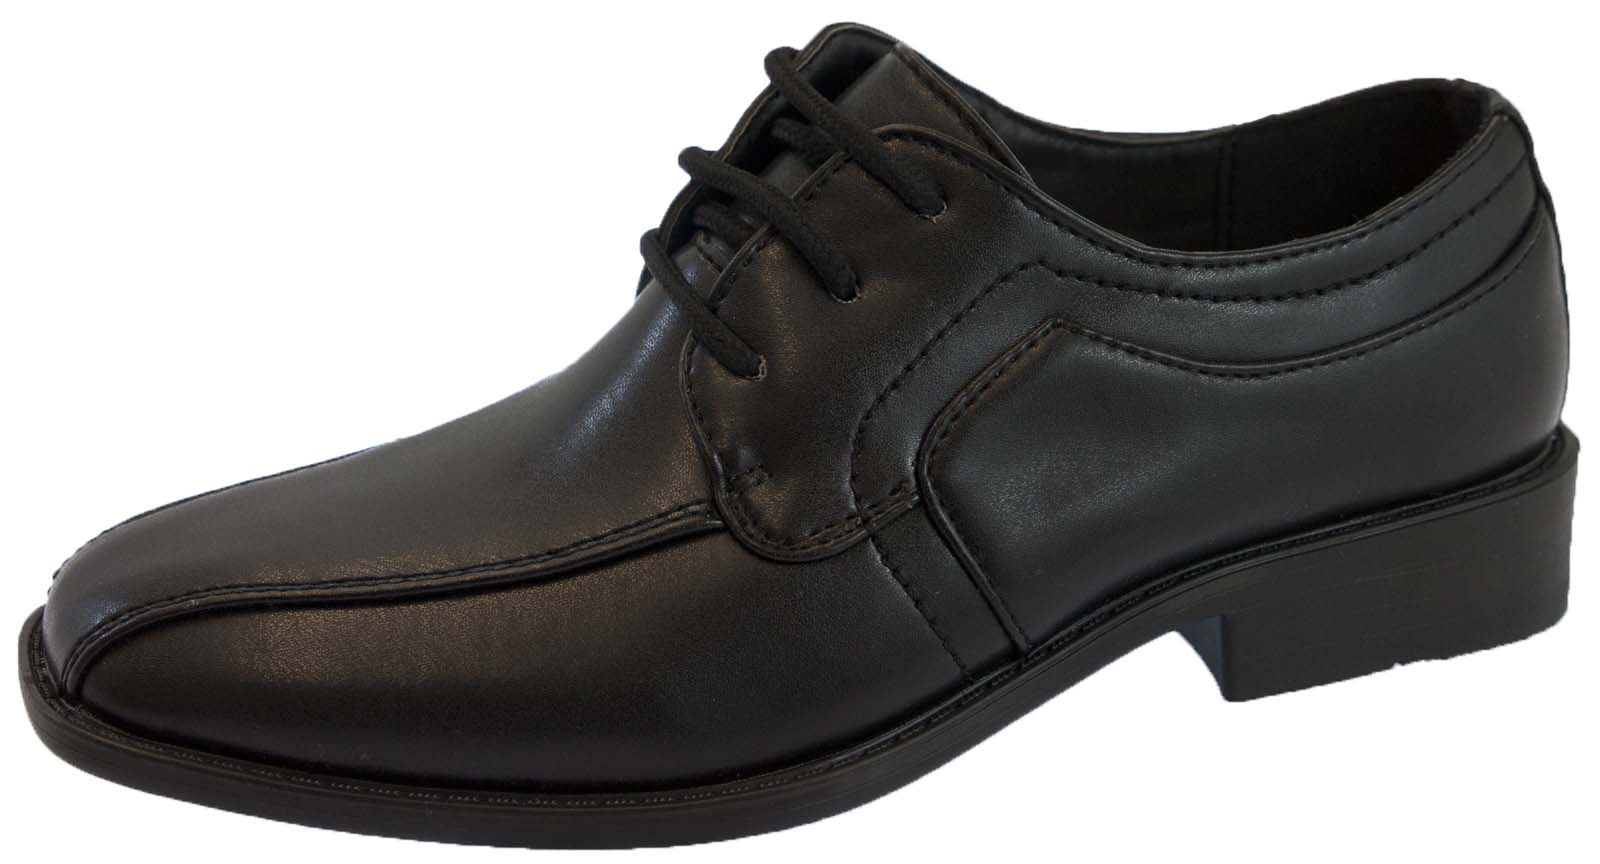 boys black faux leather school shoes lace up prom formal